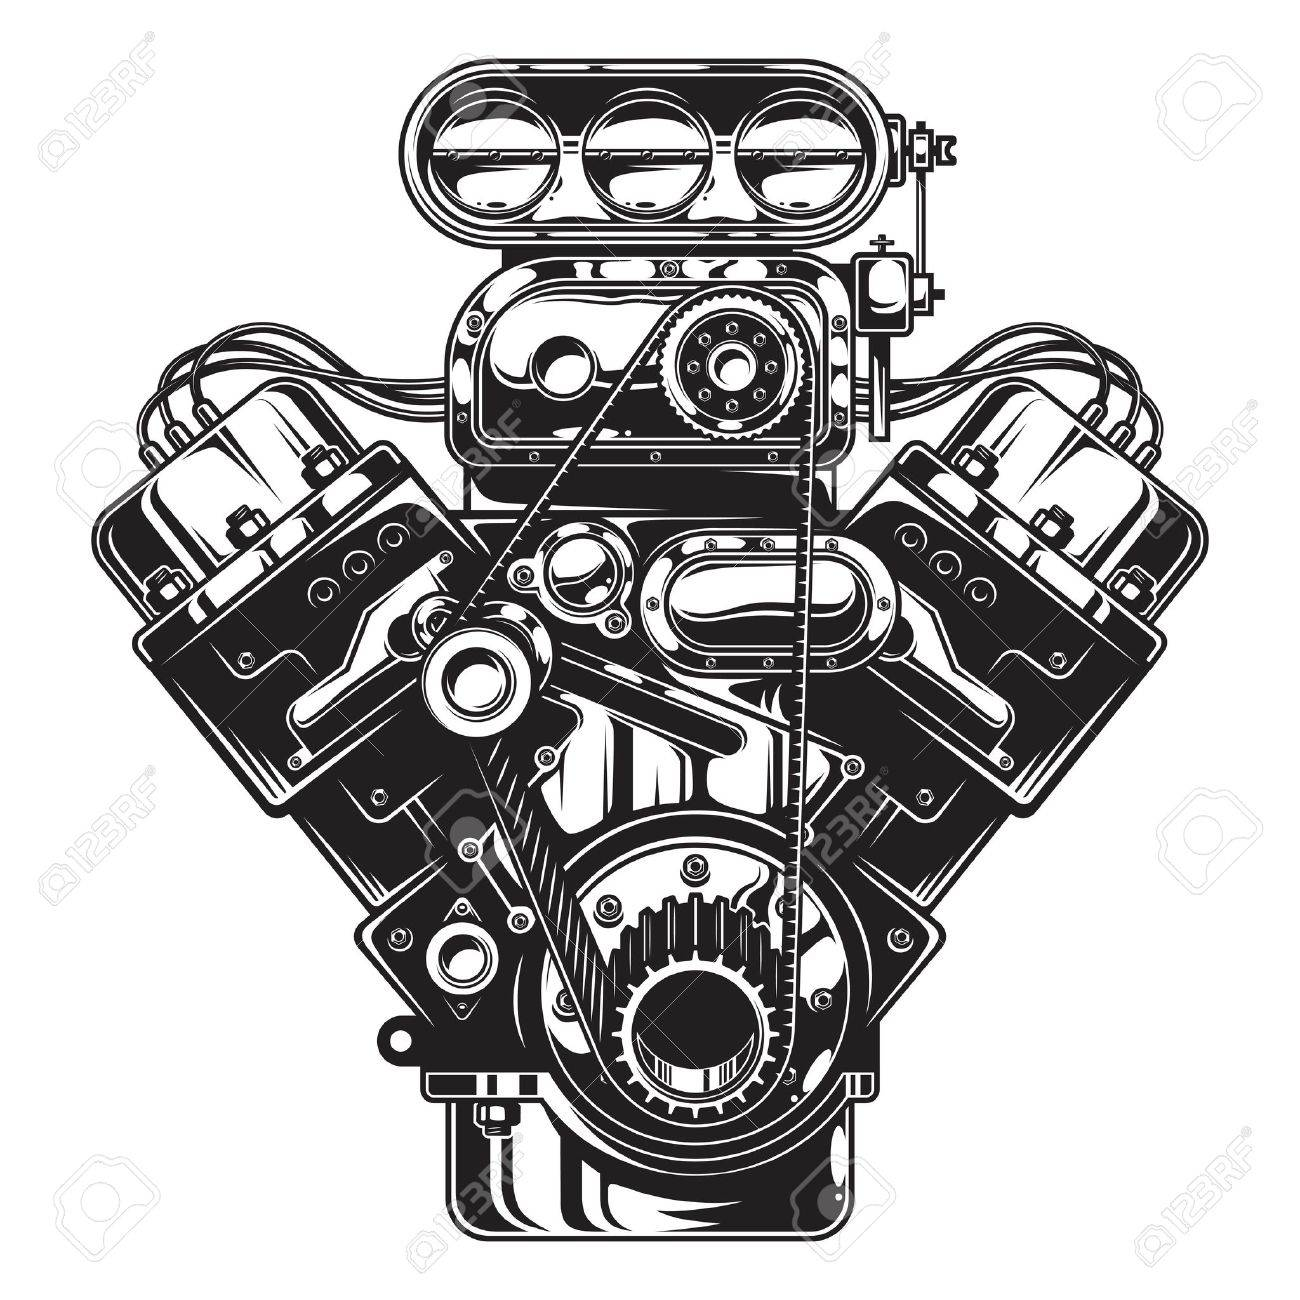 Isolated Illustration Of Car Engine On White Layout. Royalty Free ...